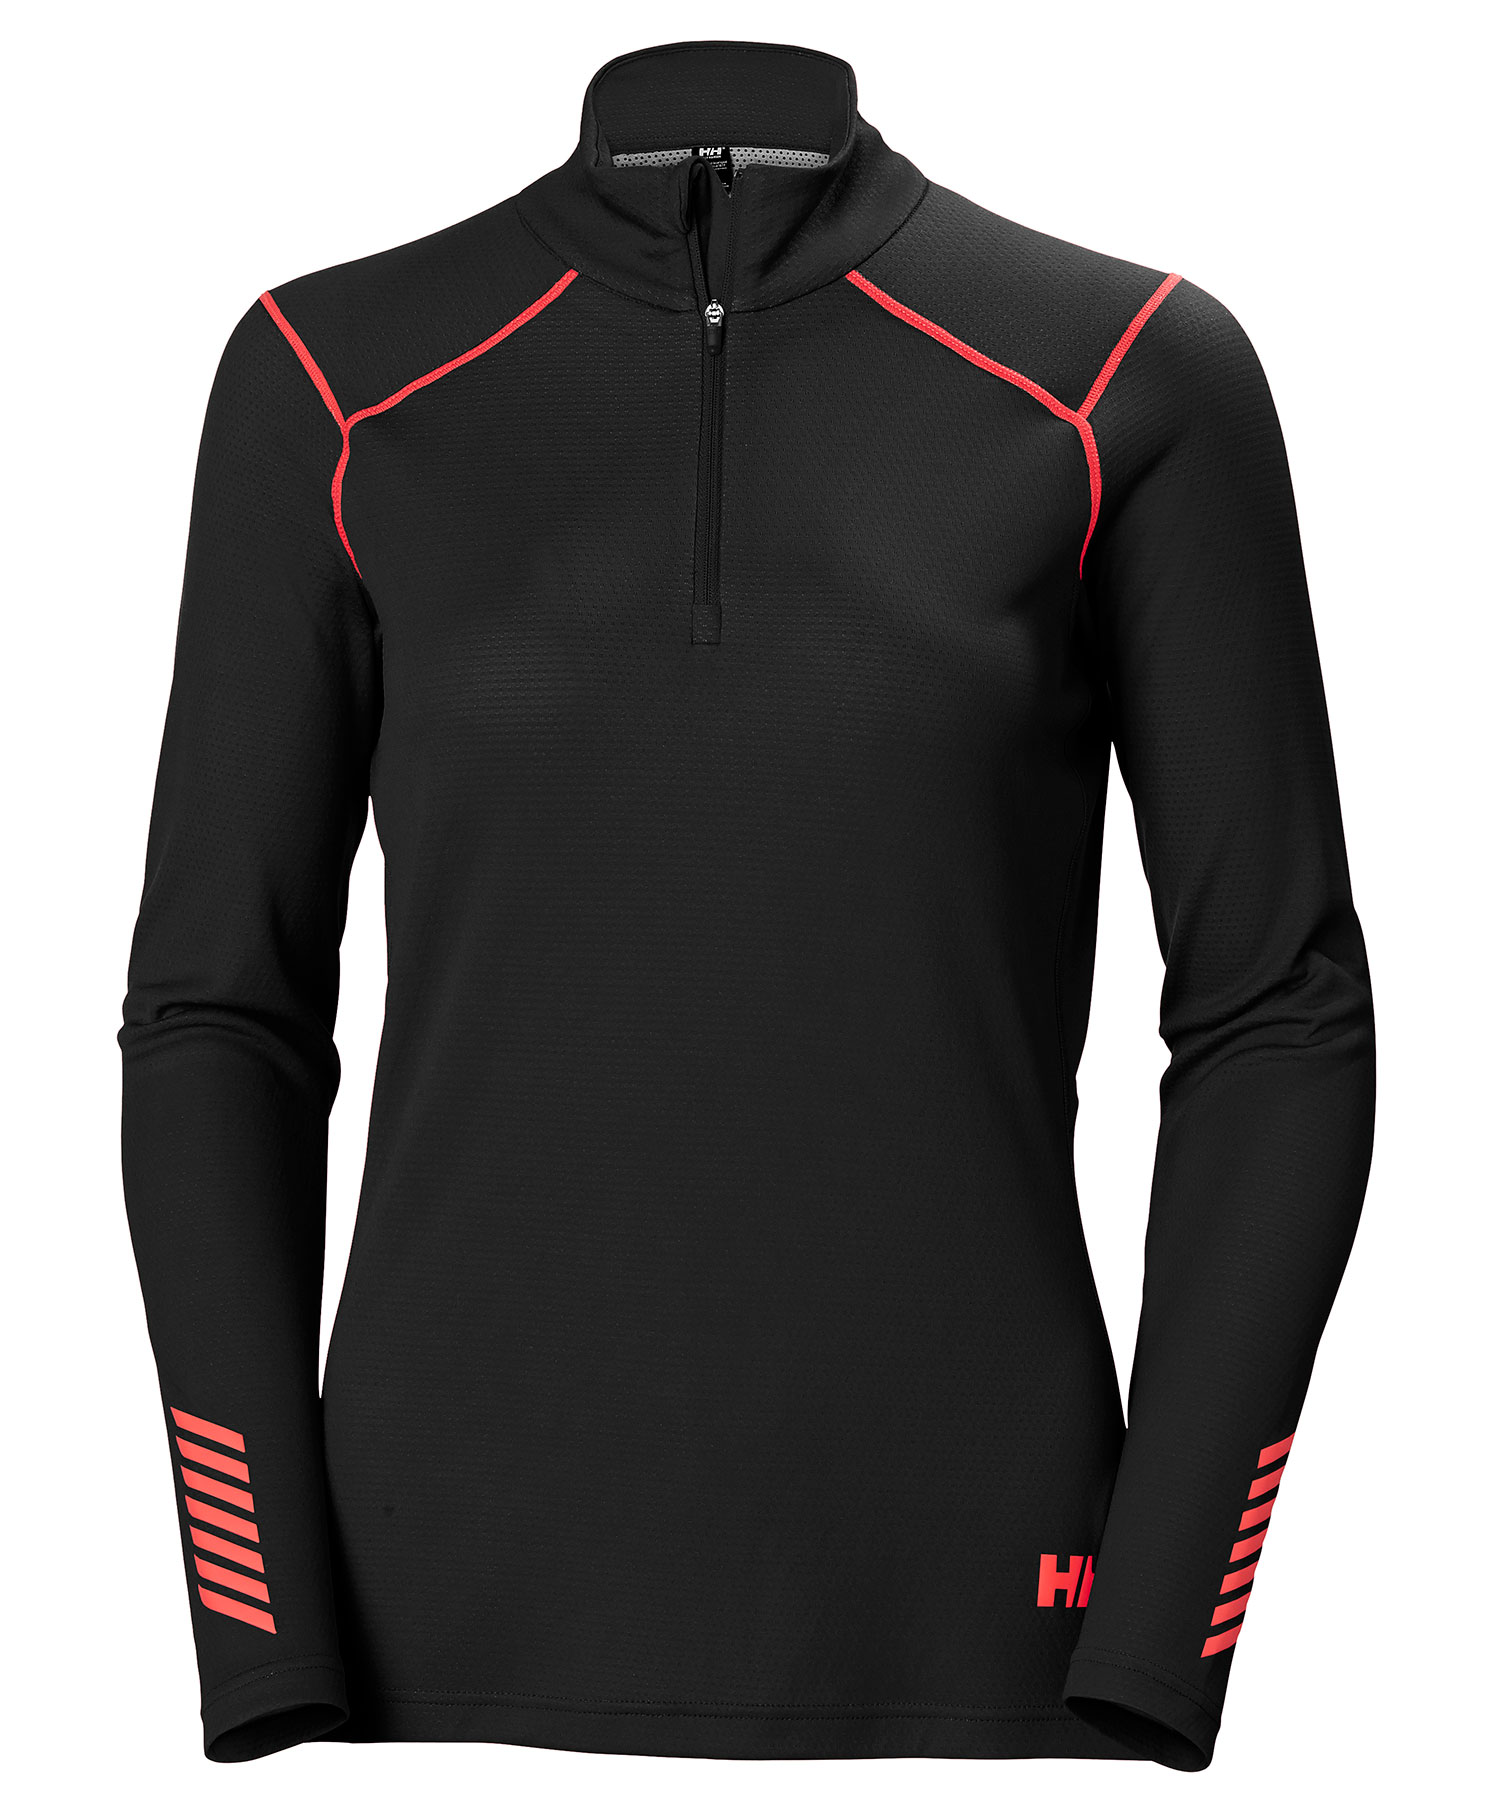 Helly Hansen active zip